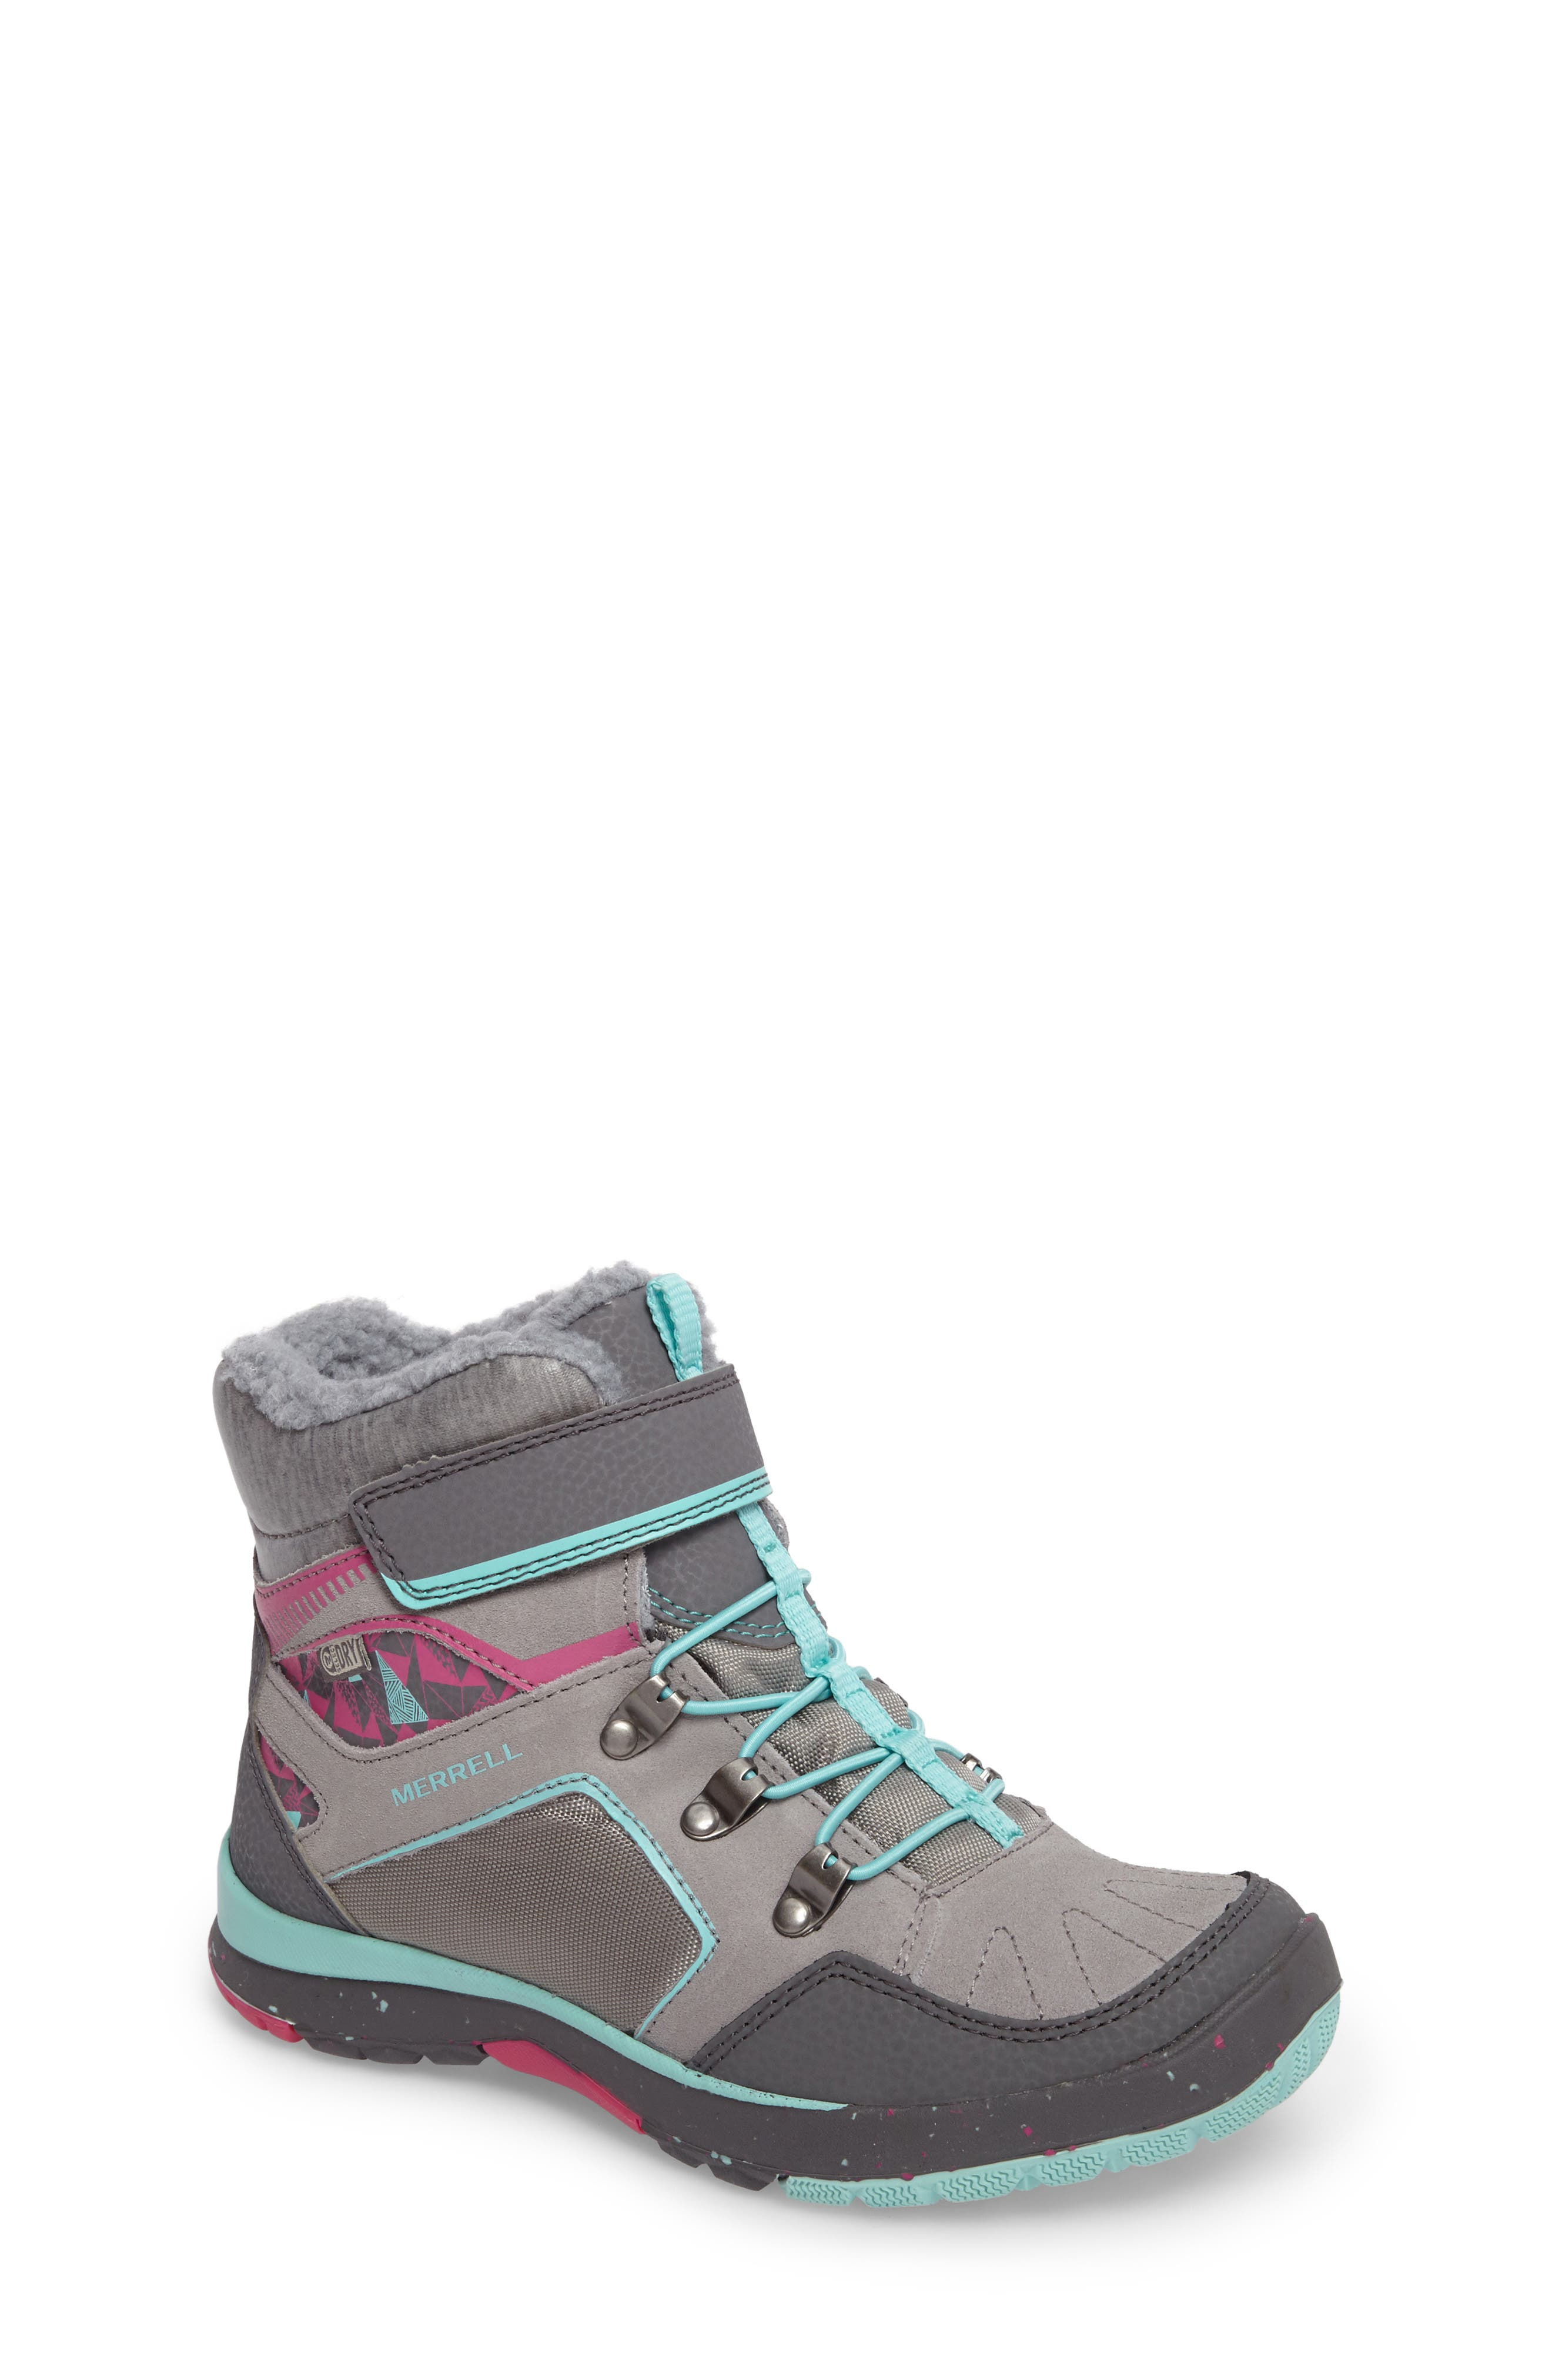 Moab FST Polar Mid Waterproof Insulated Sneaker Boot,                         Main,                         color,